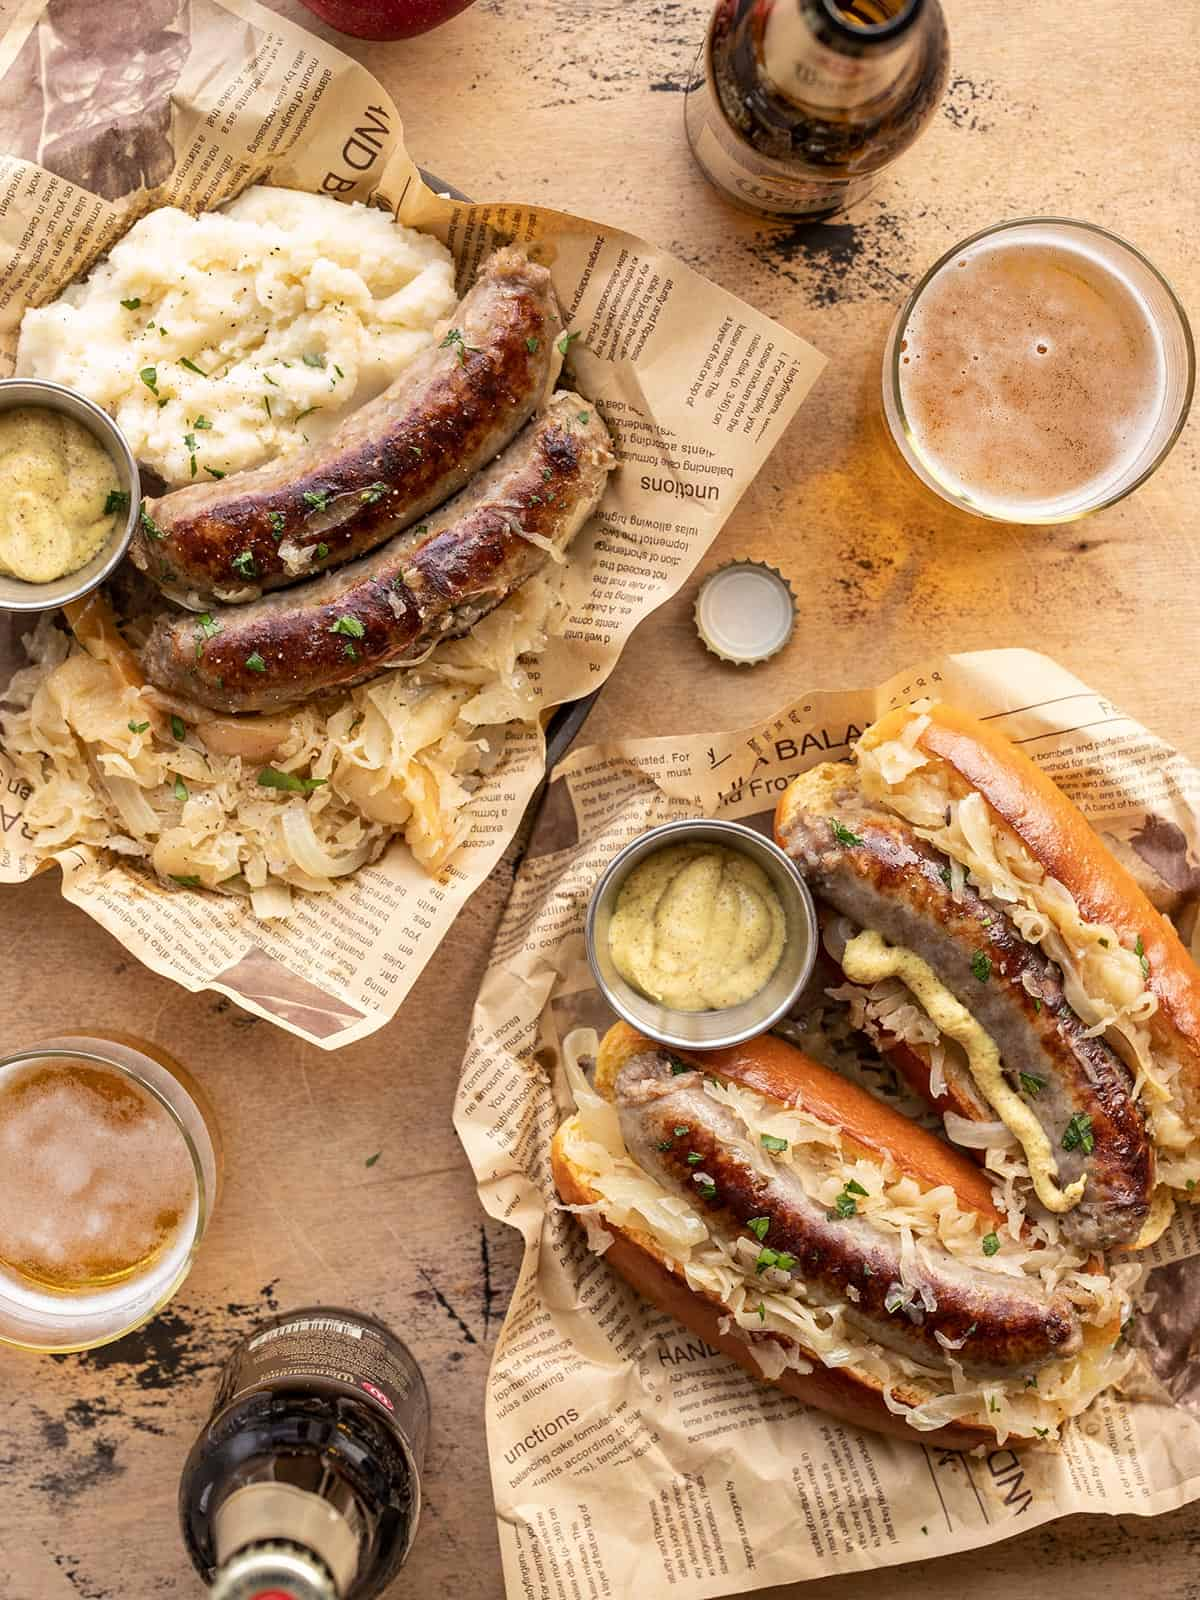 Bratwurst and Sauerkraut on two plates, one with buns and one with mashed potatoes